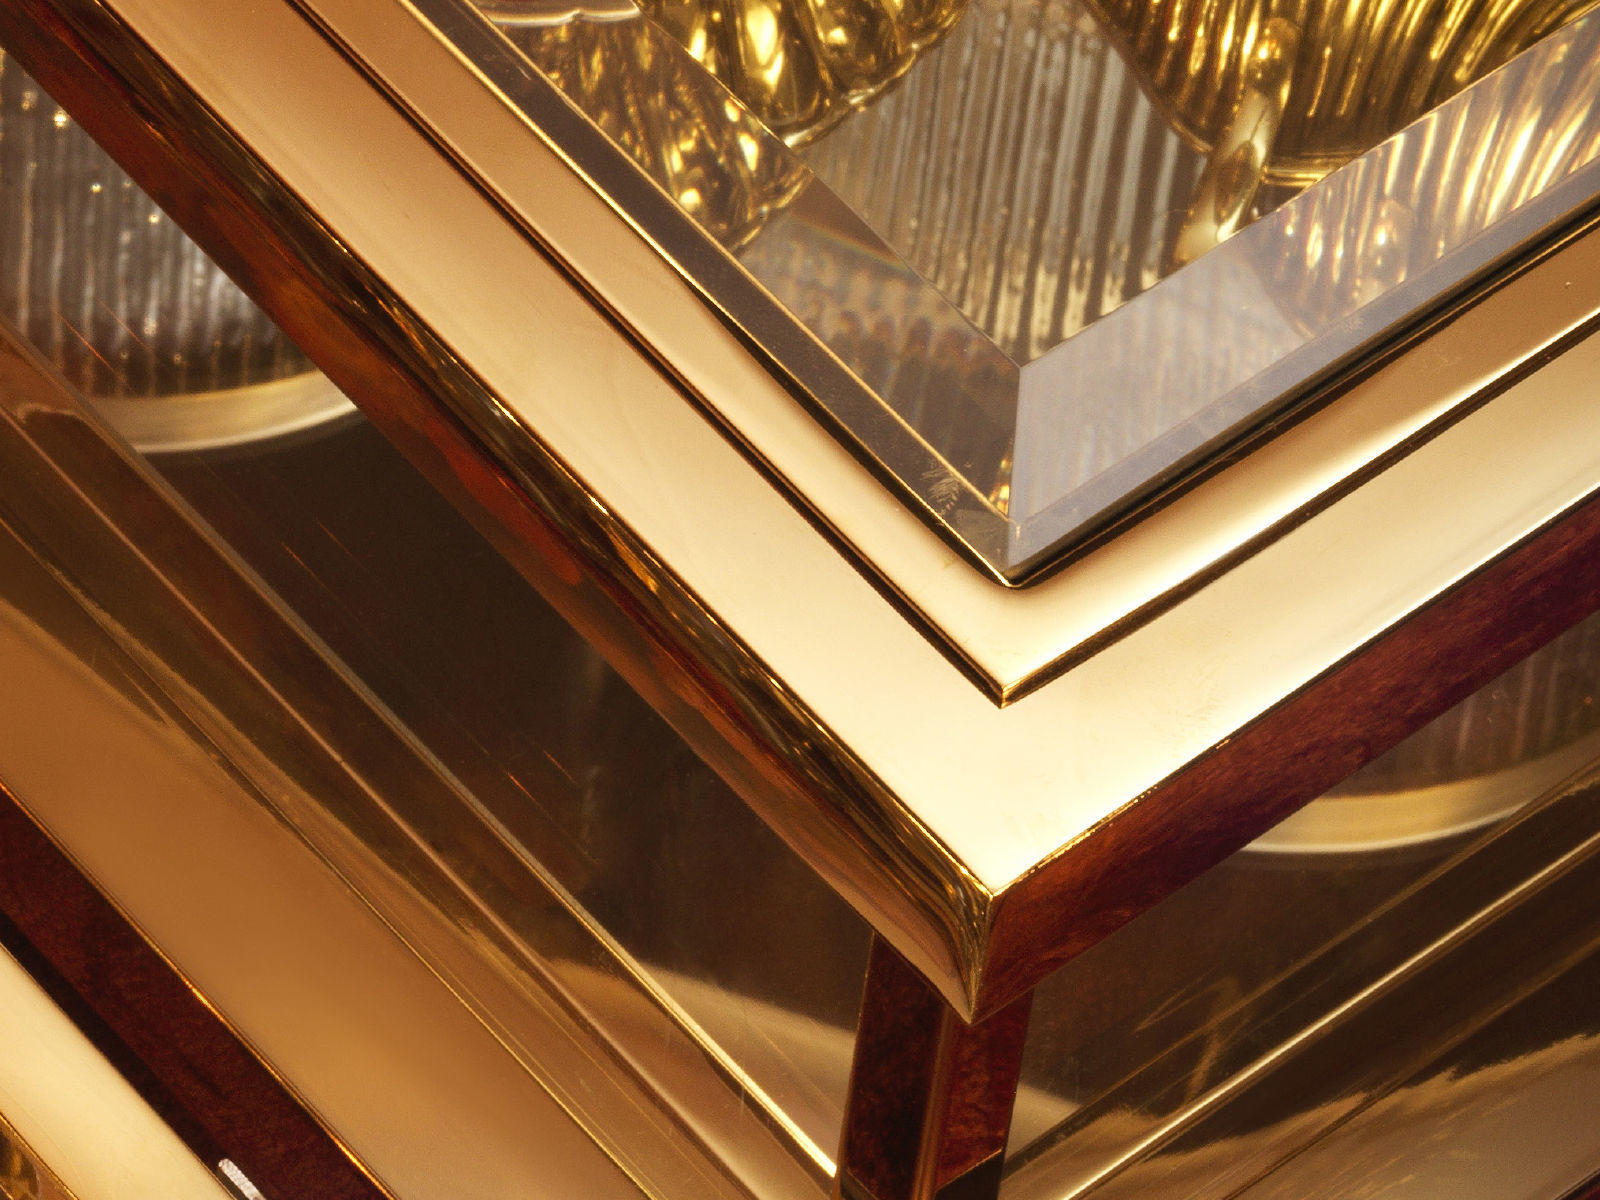 Metallic finishes and glass detail